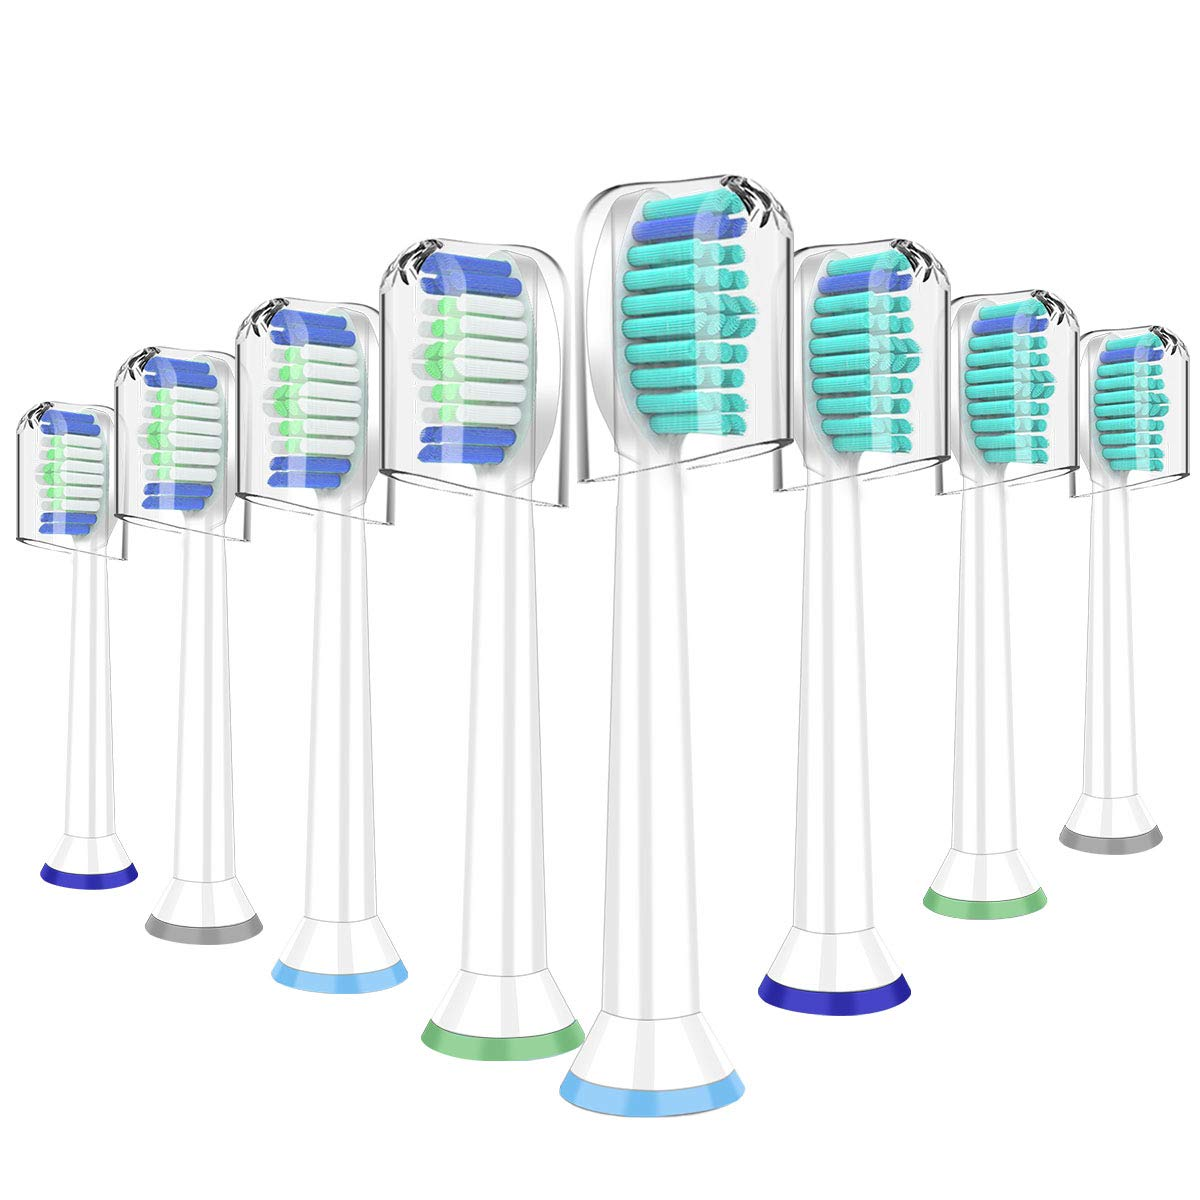 fits Sonicare electric toothbrush perfectly